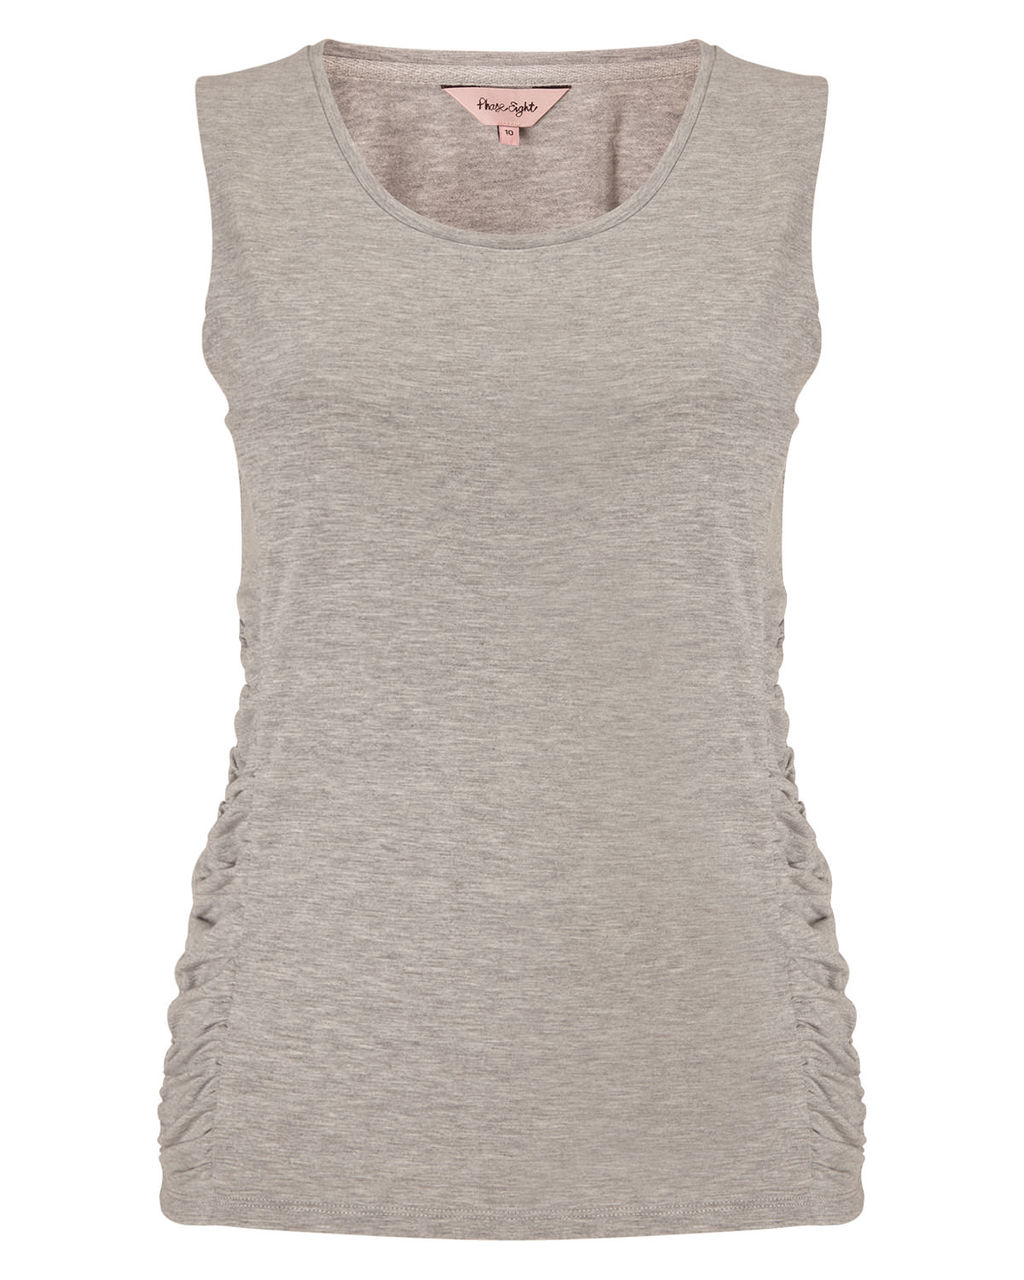 Gigi Gathered Vest - neckline: round neck; sleeve style: standard vest straps/shoulder straps; pattern: plain; length: below the bottom; style: vest top; predominant colour: stone; occasions: casual; fibres: cotton - 100%; fit: body skimming; sleeve length: sleeveless; pattern type: fabric; texture group: jersey - stretchy/drapey; season: a/w 2015